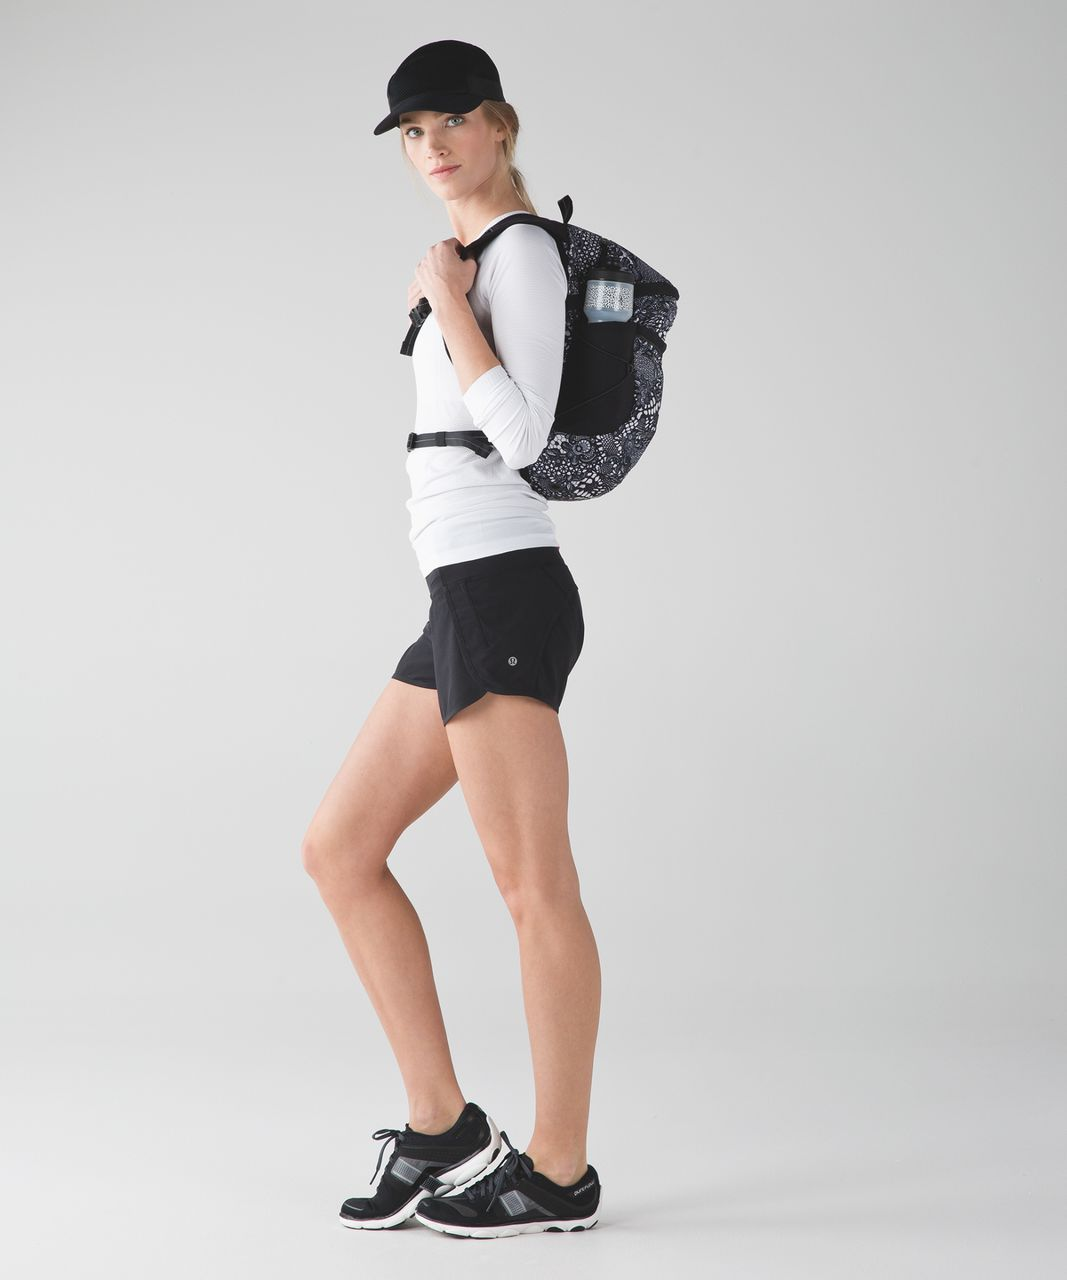 Lululemon Run All Day Backpack - Pretty Lace White Black / Black